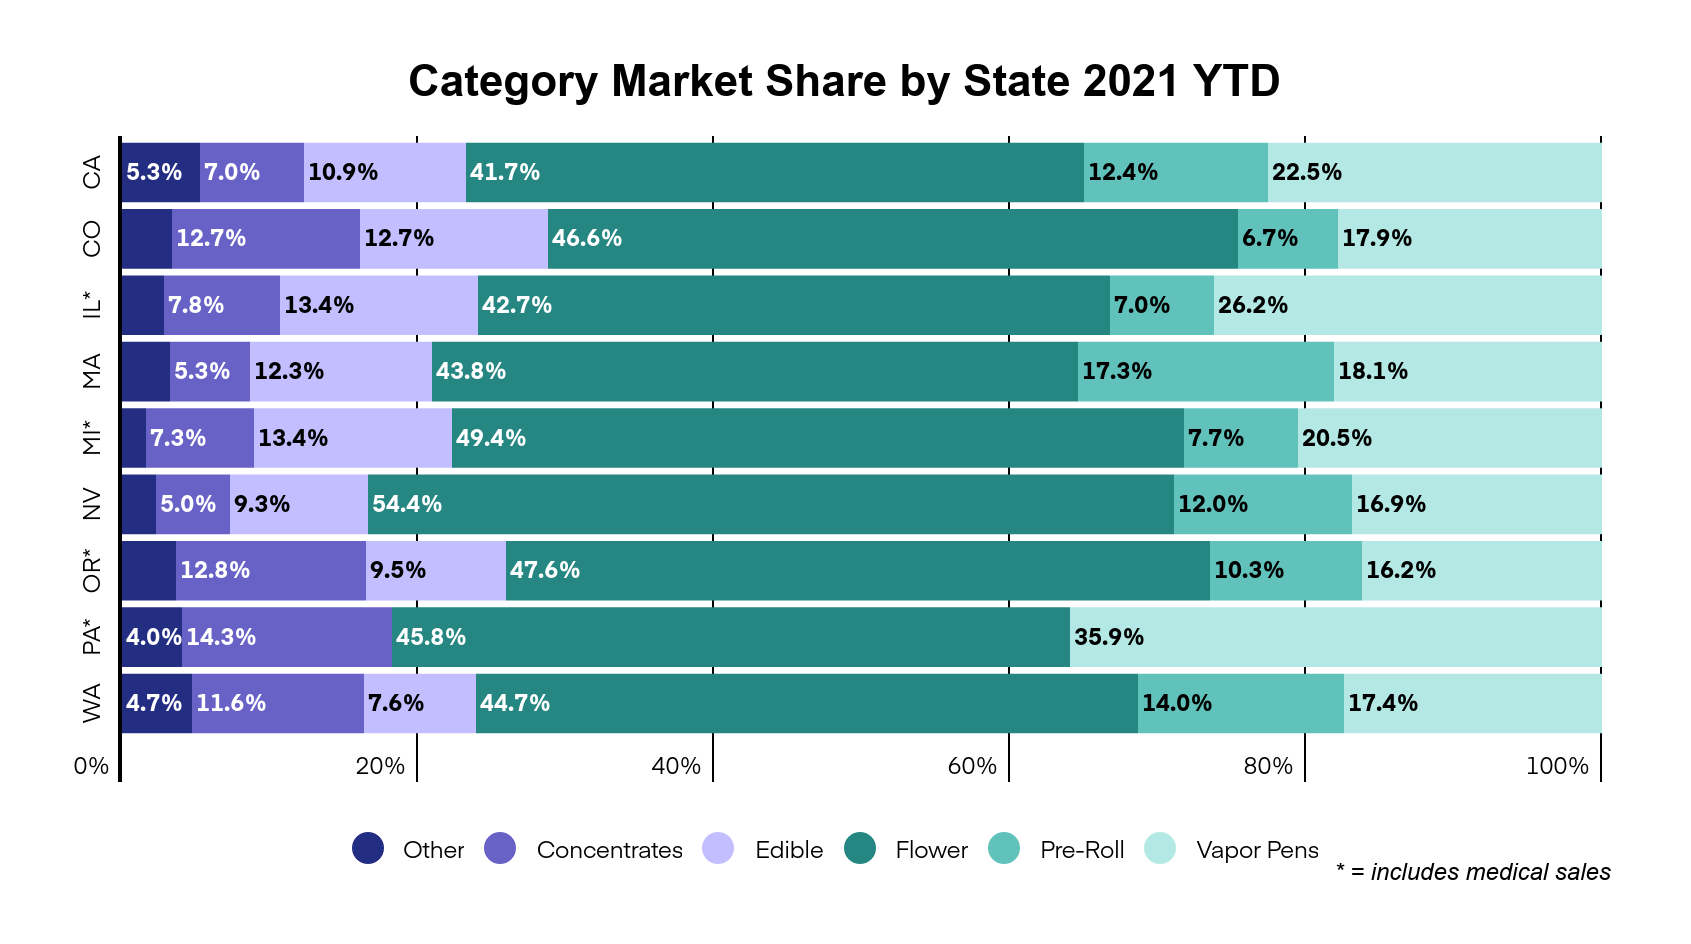 Illinois cannabis market overview graph 4: Cannabis category market share by state